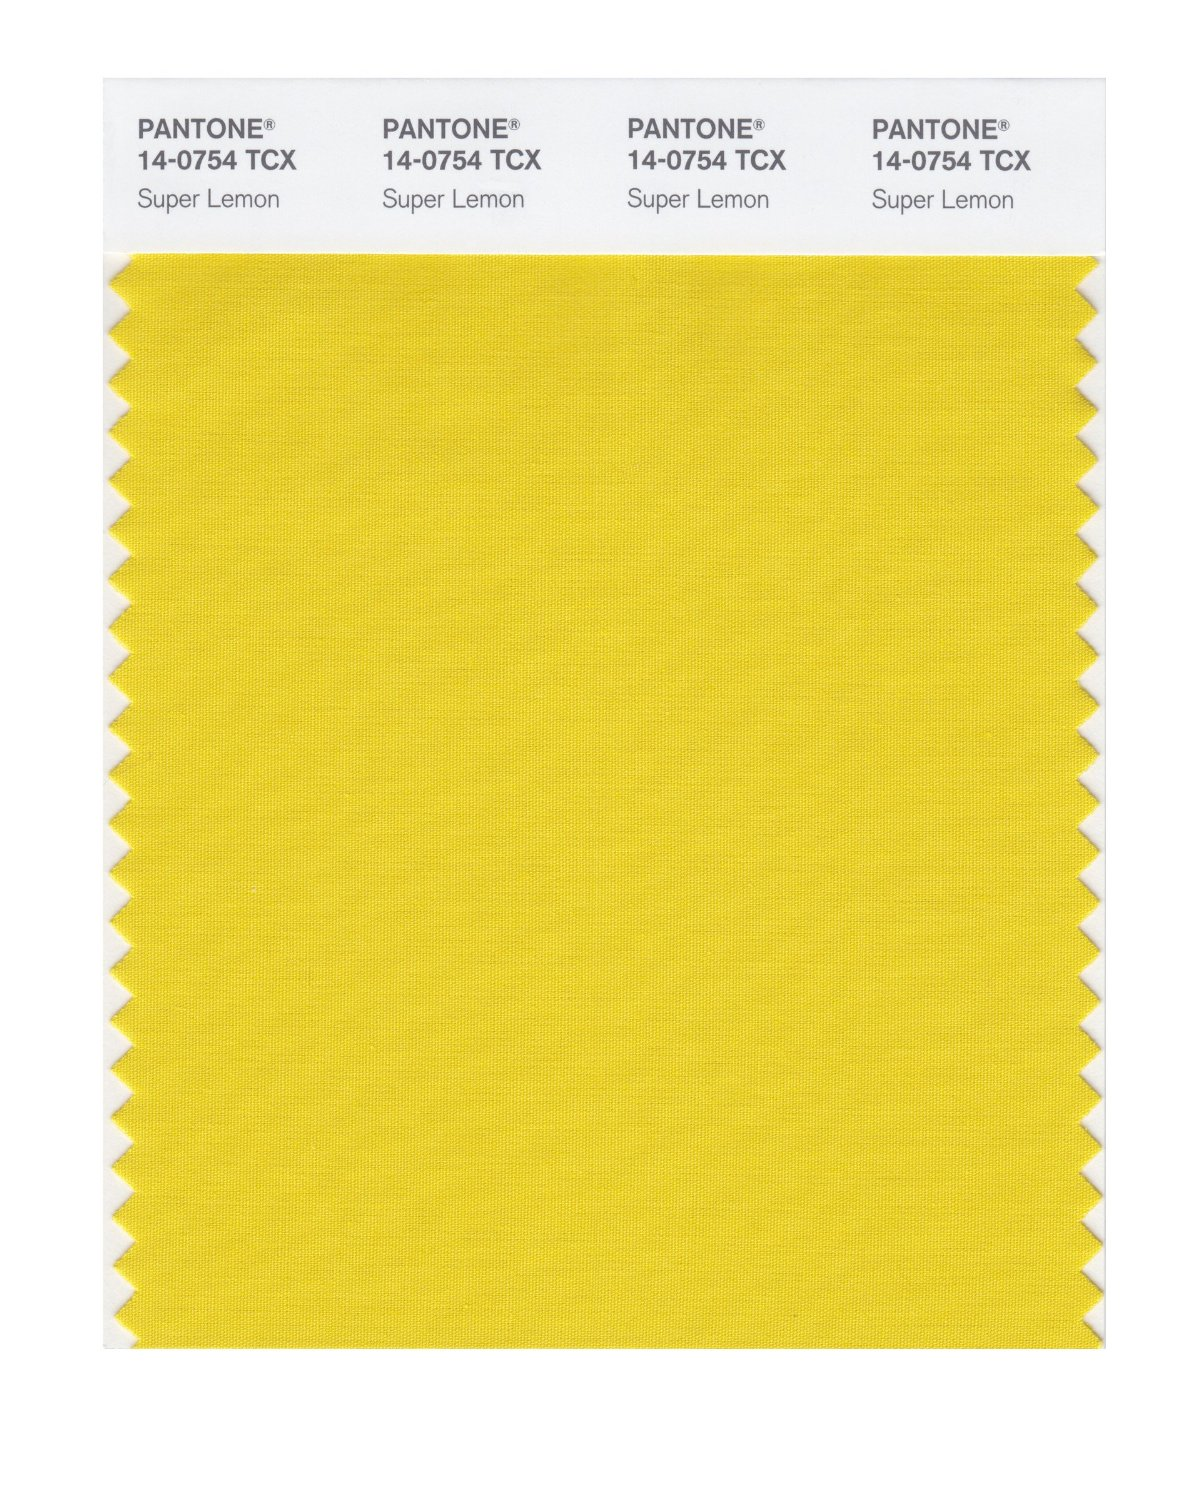 Pantone Smart Swatch 14-0754 Super Lemon